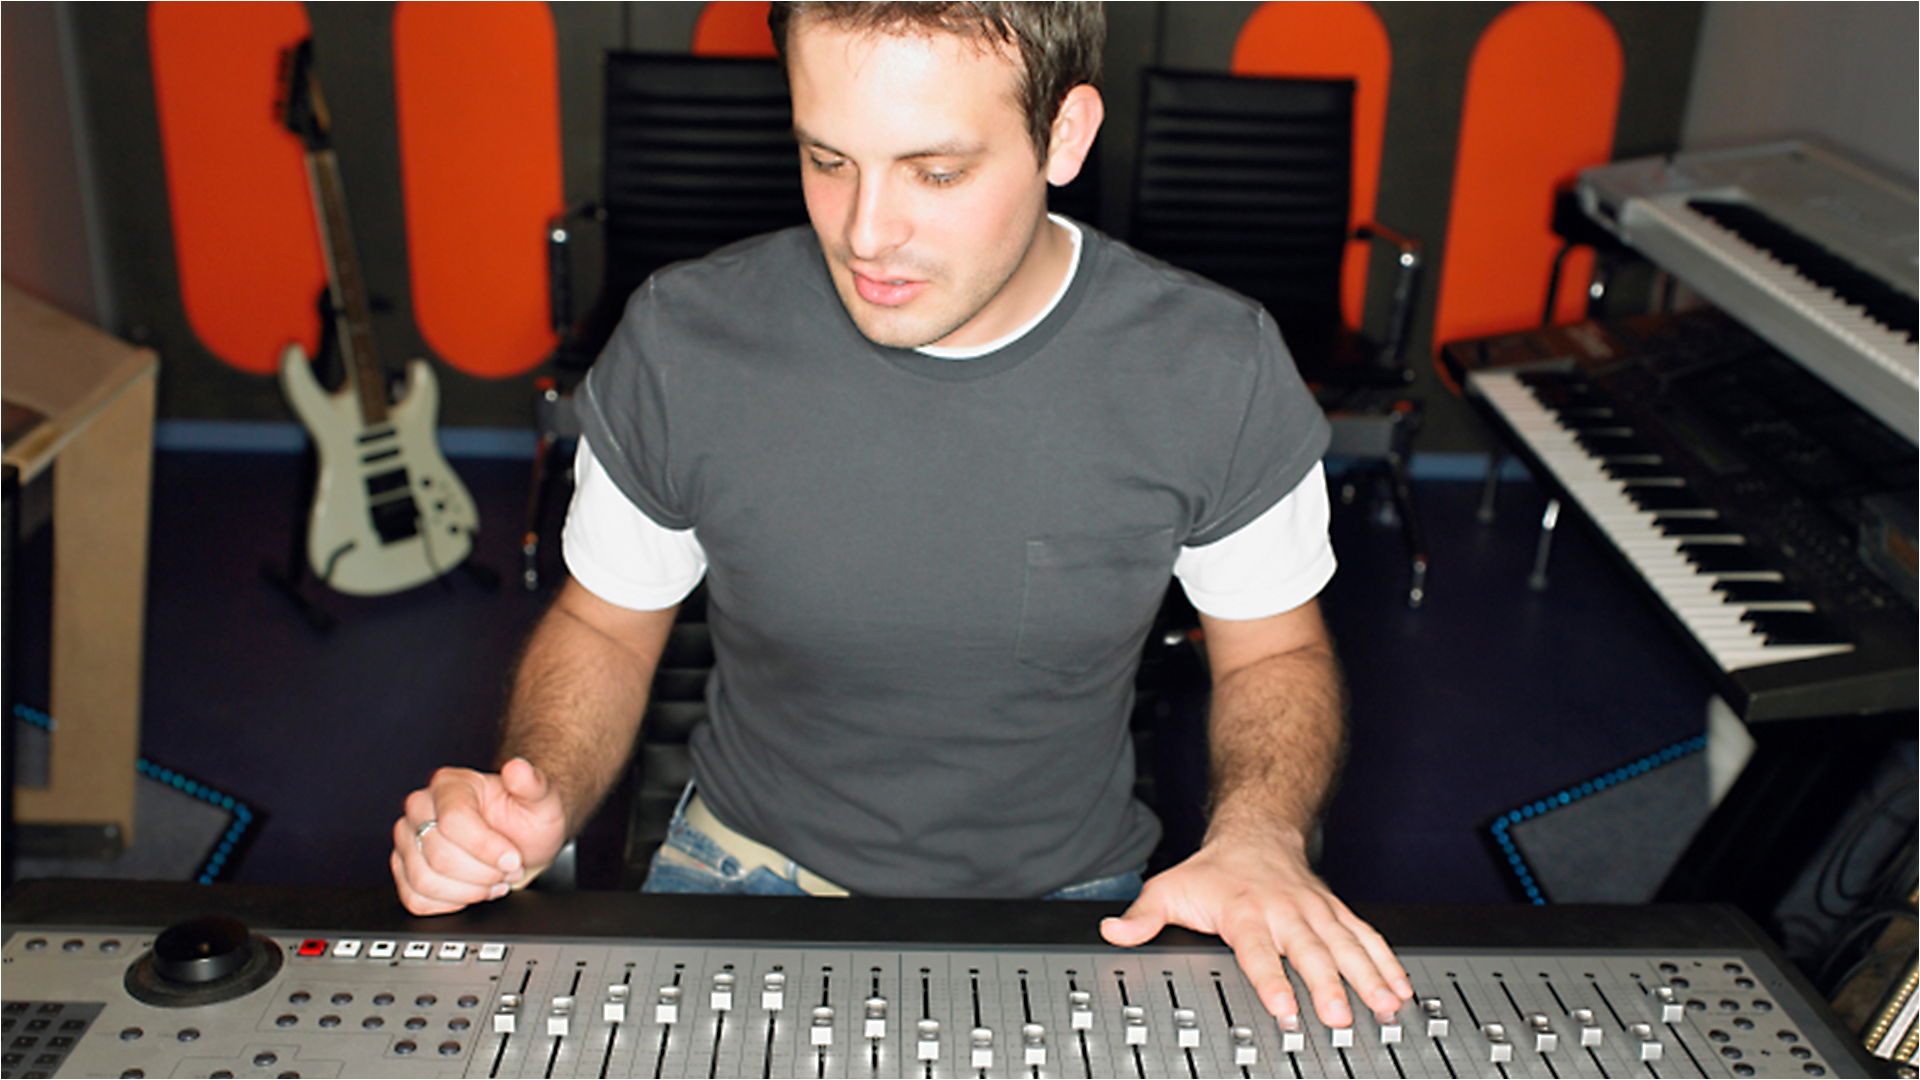 Conference On Demand - Getting Around The Mixing Console